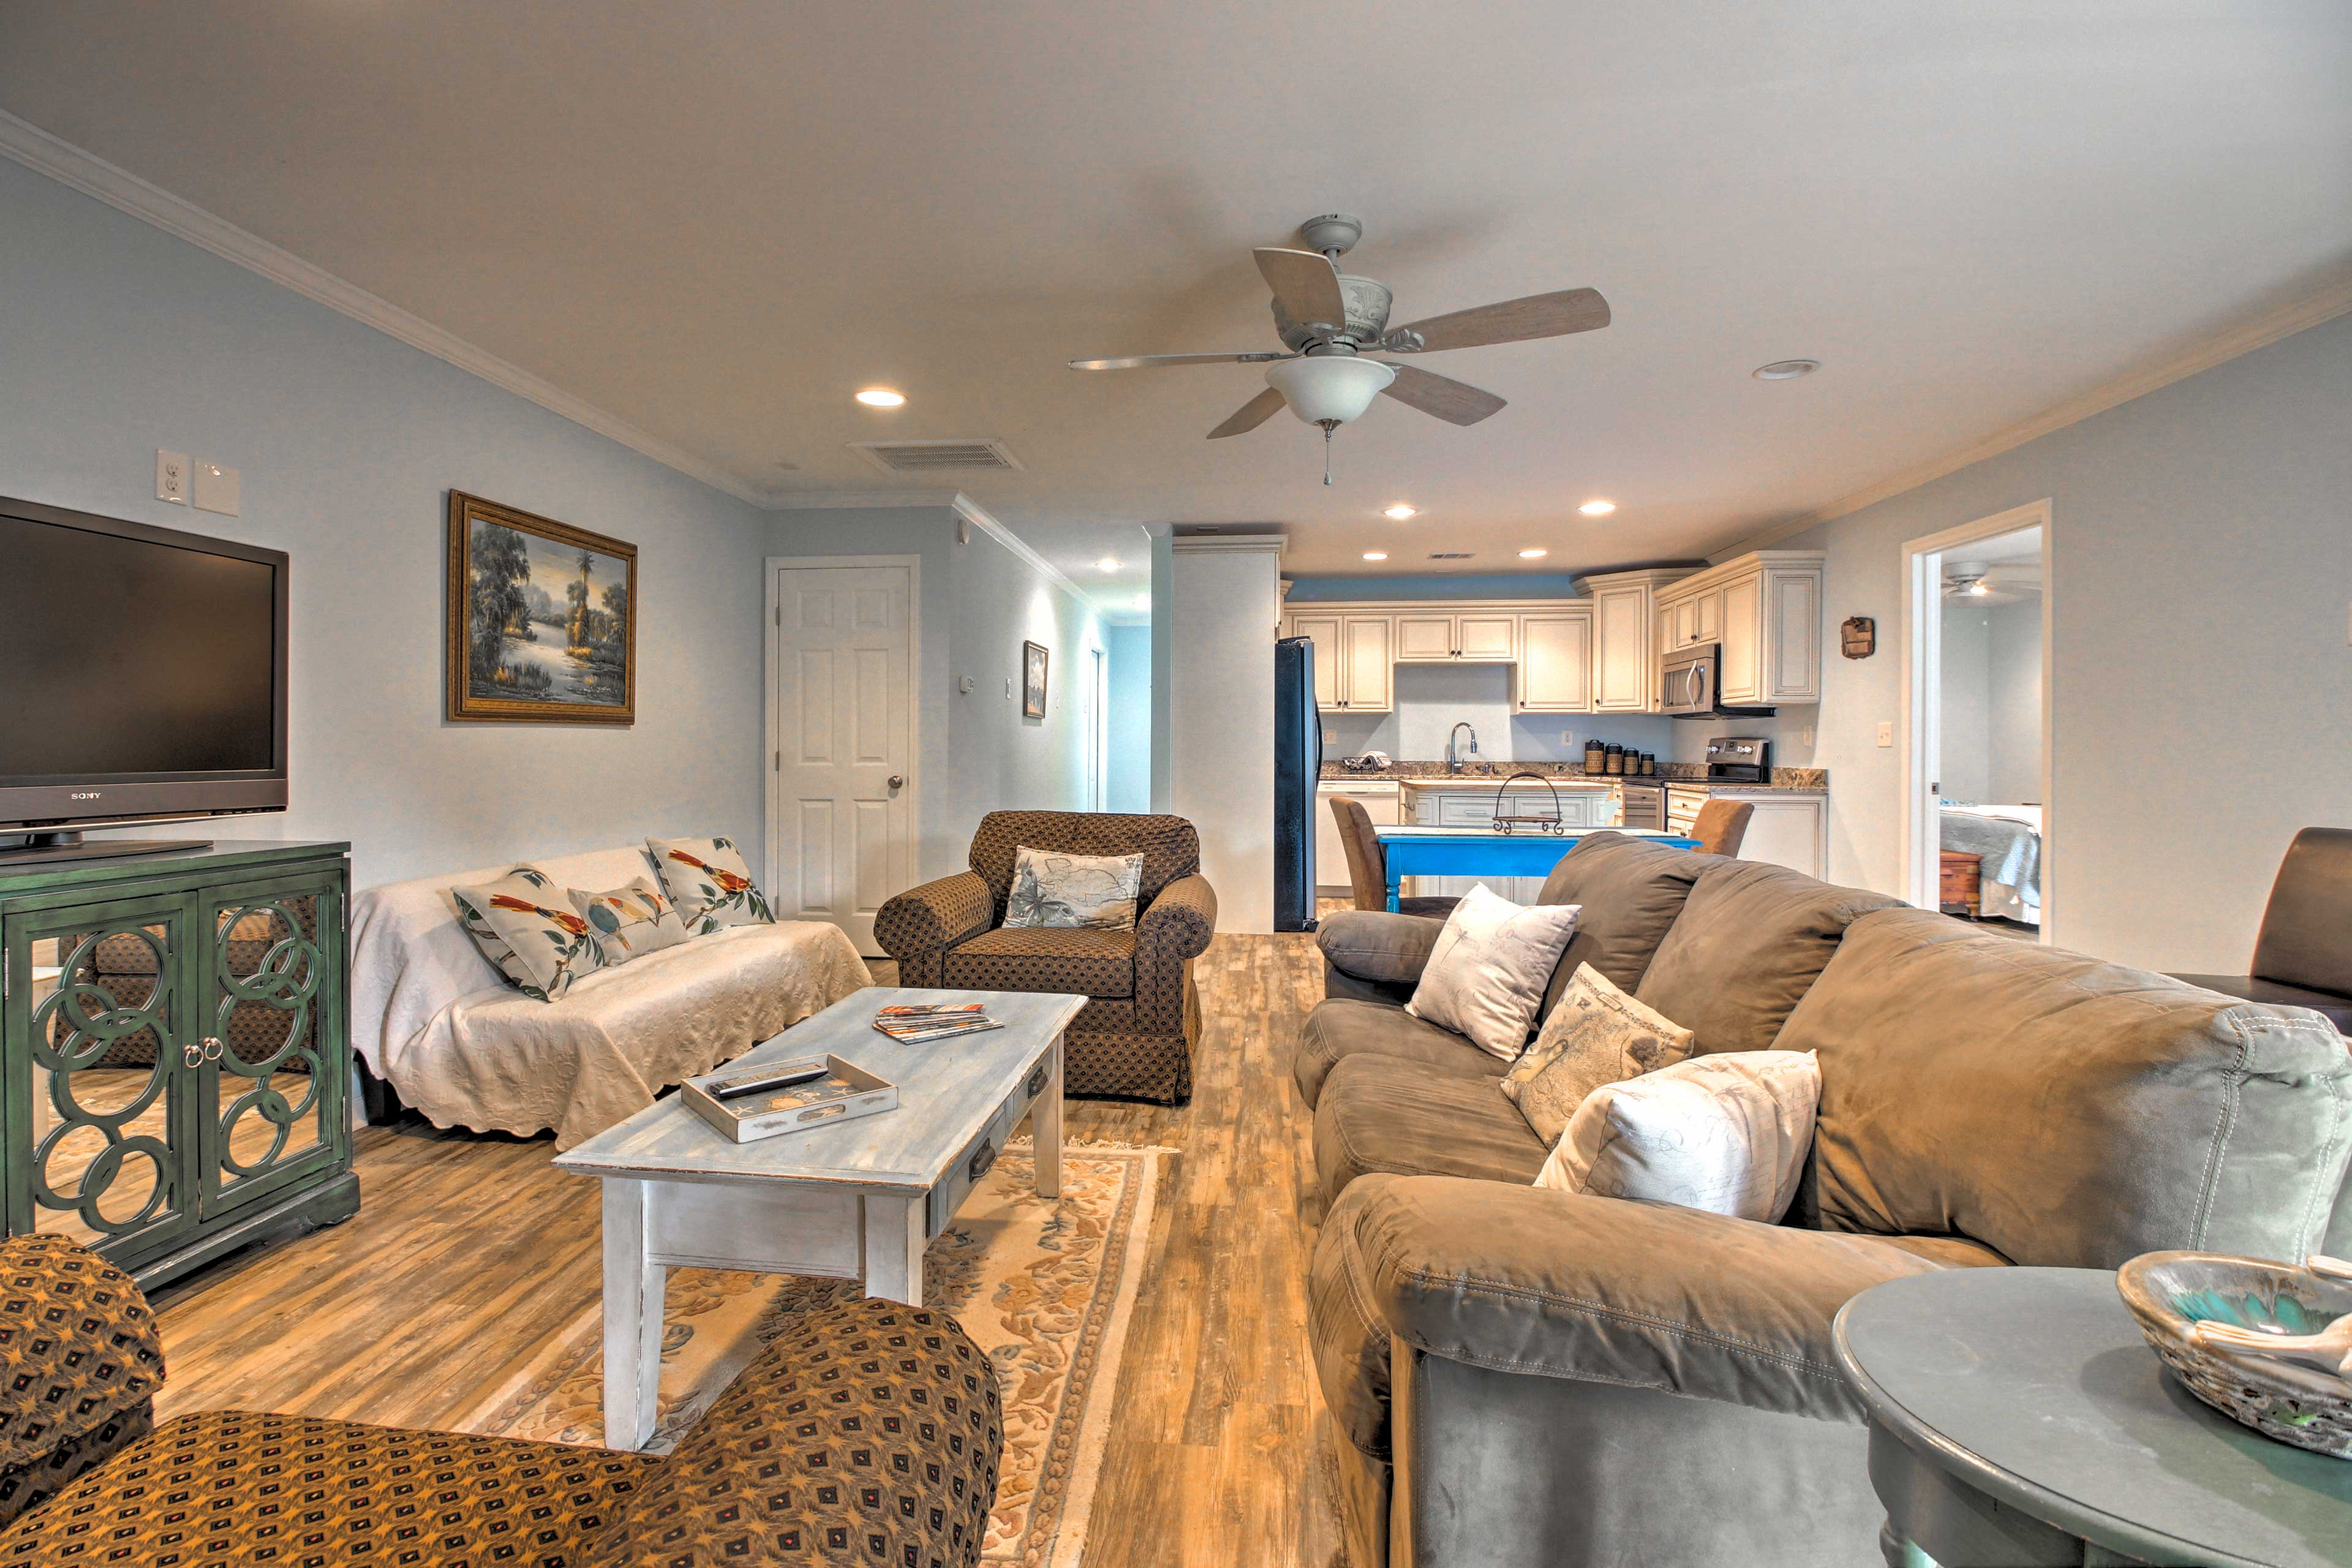 Stay at this charming vacation rental apartment for your next Savannah sojourn!